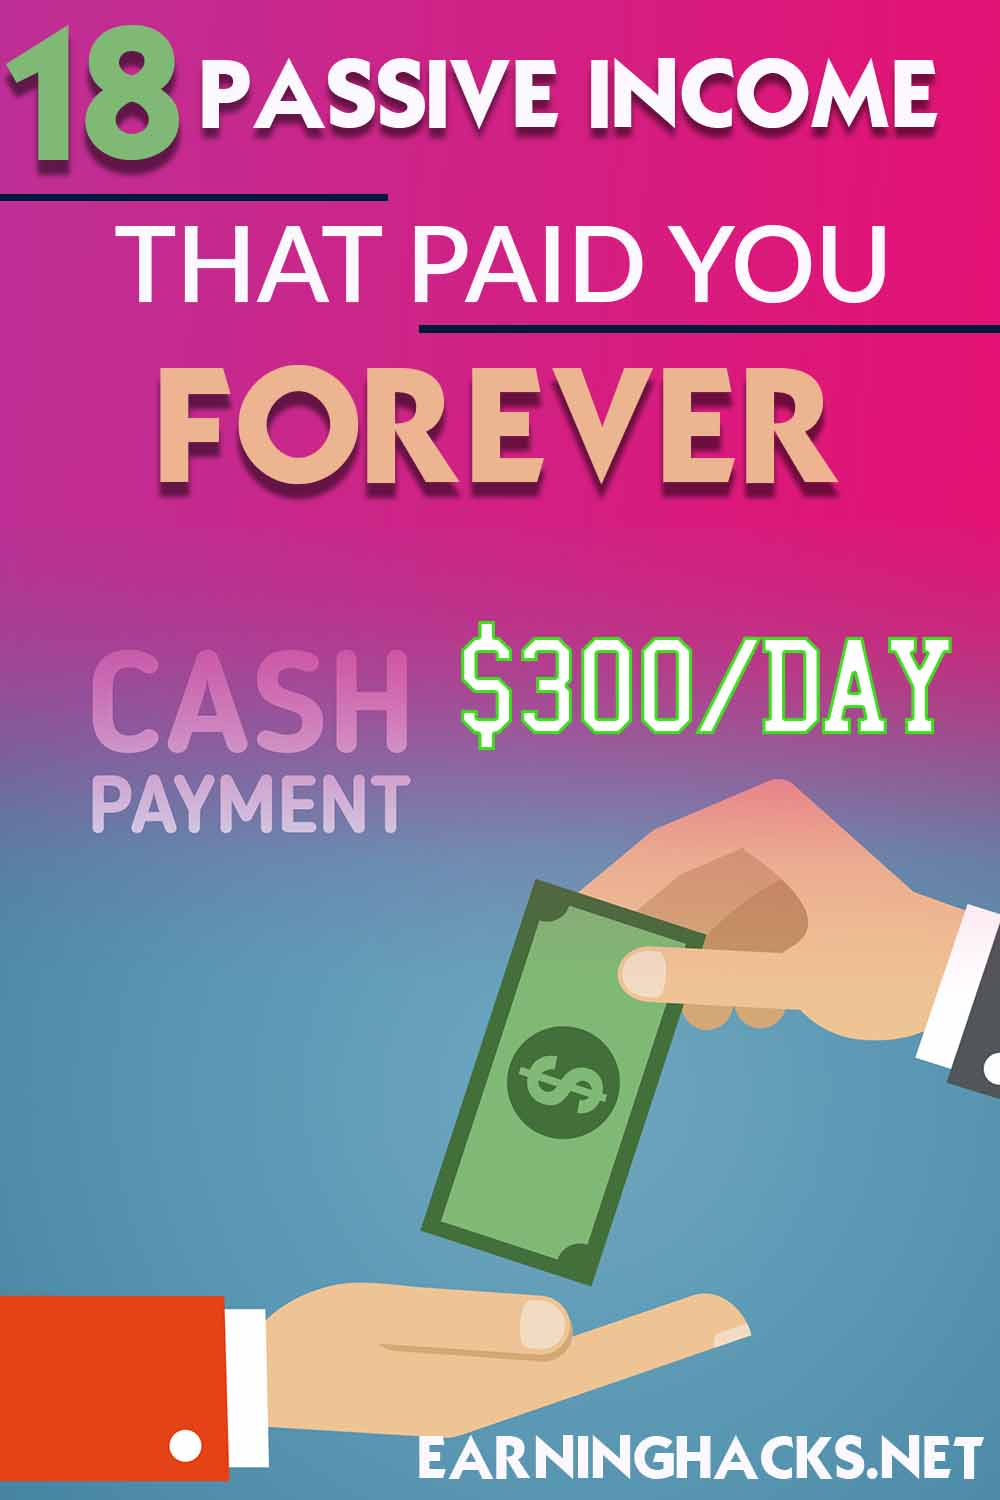 18 passive income that paid you forever $300 day